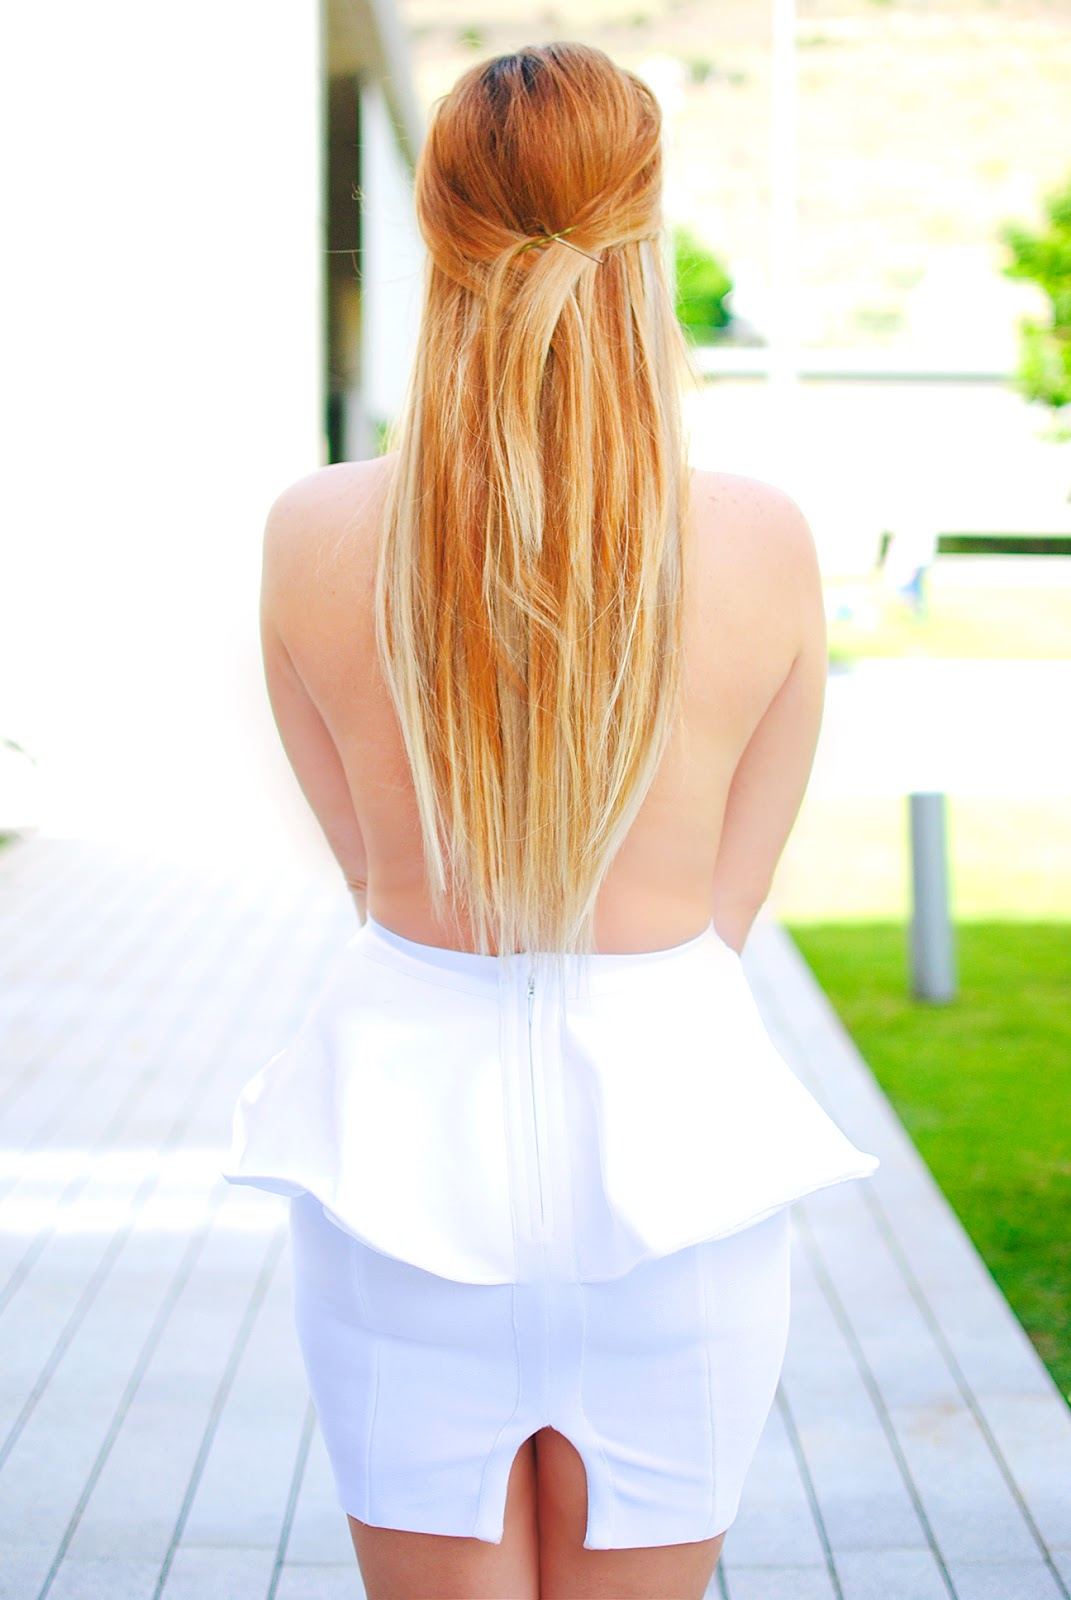 nery hdez, hairtrade, celebindress, white dress, hair extensions, extensiones para el pelo